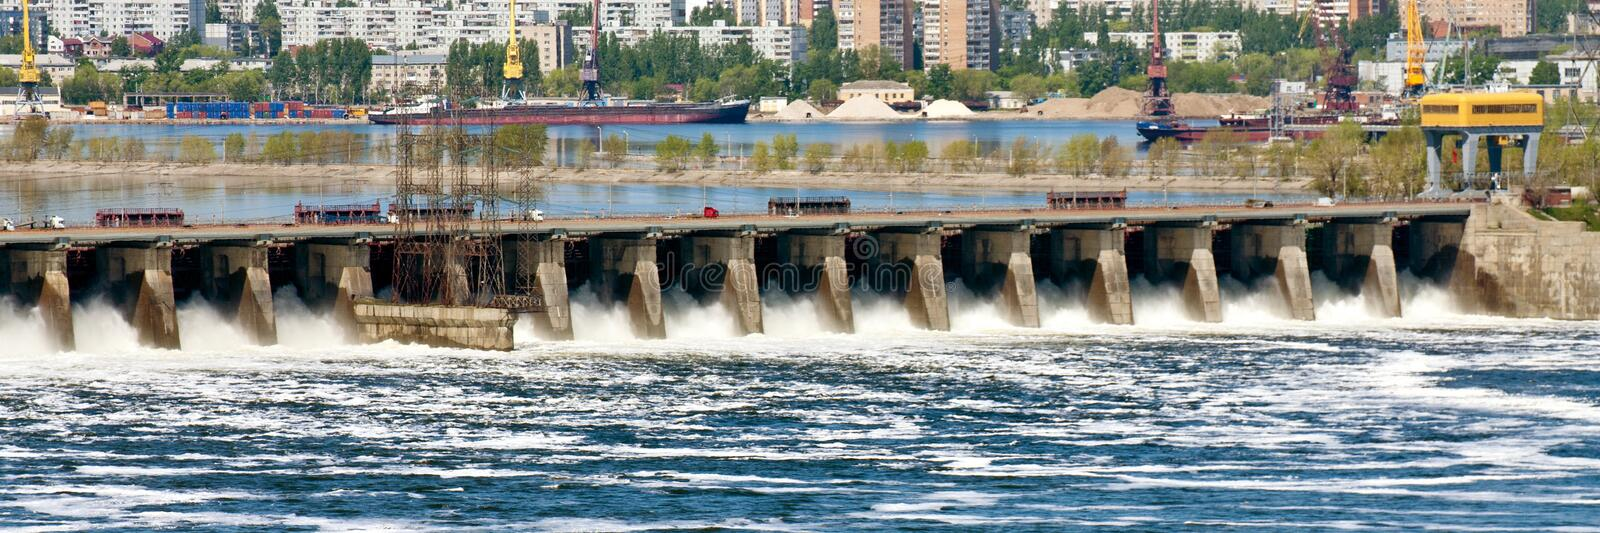 The Great Spring Water Discharge at the Zhiguli Dam near the city of Tolyatti on the Volga River. Zhigulevskaya hydroelectric station on the Volga River during stock image